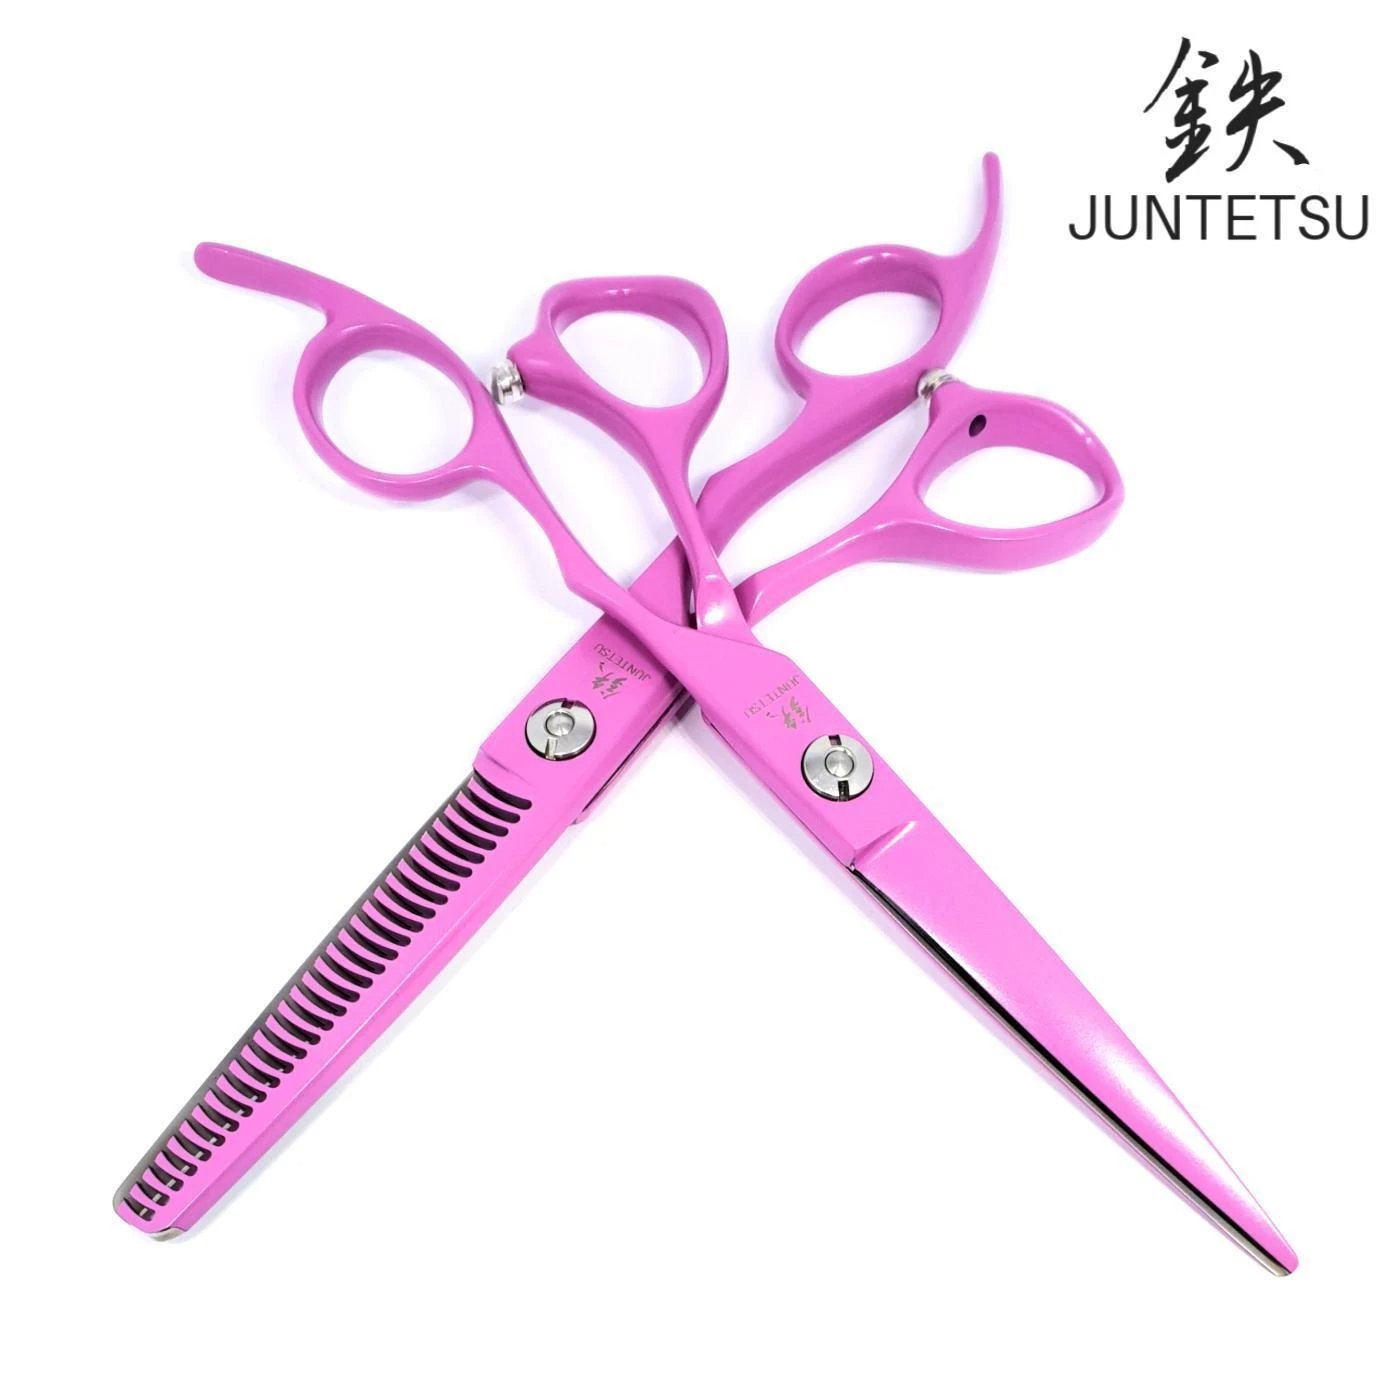 Juntetsu Pink Cutting & Thinning Scissors Set - Japan Scissors